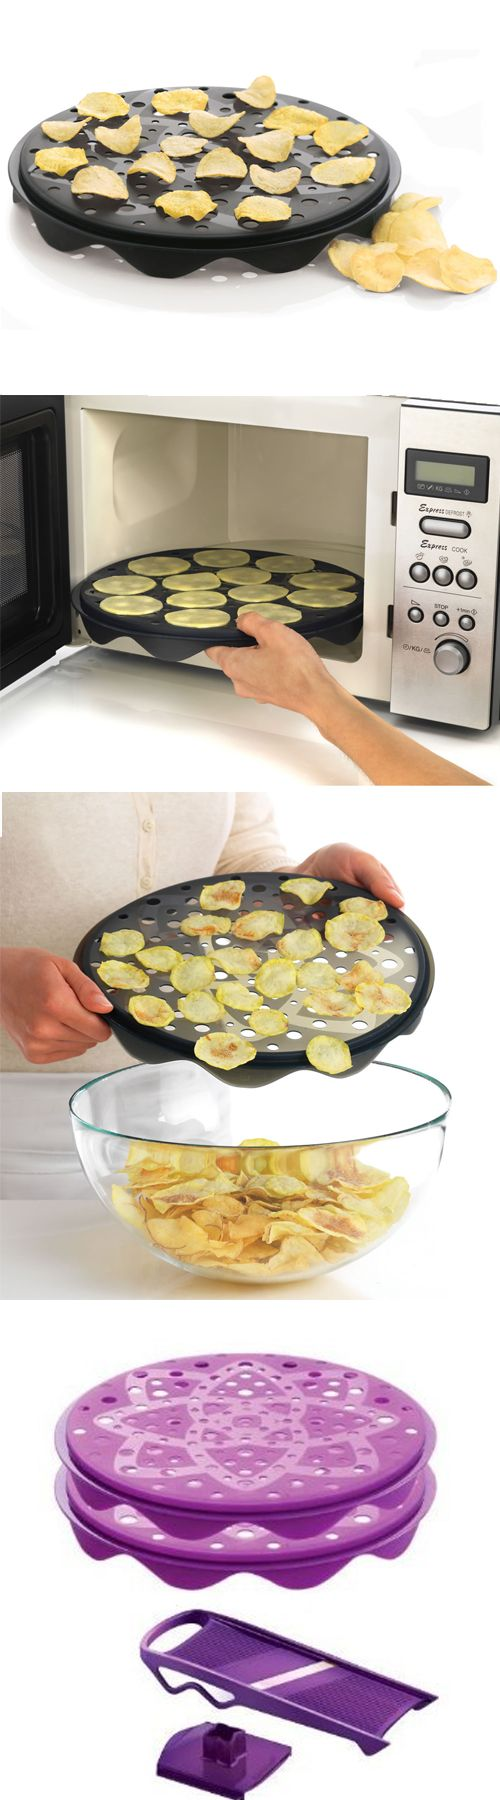 Oil Free Chips Maker Set- america's test kitchen says it is great